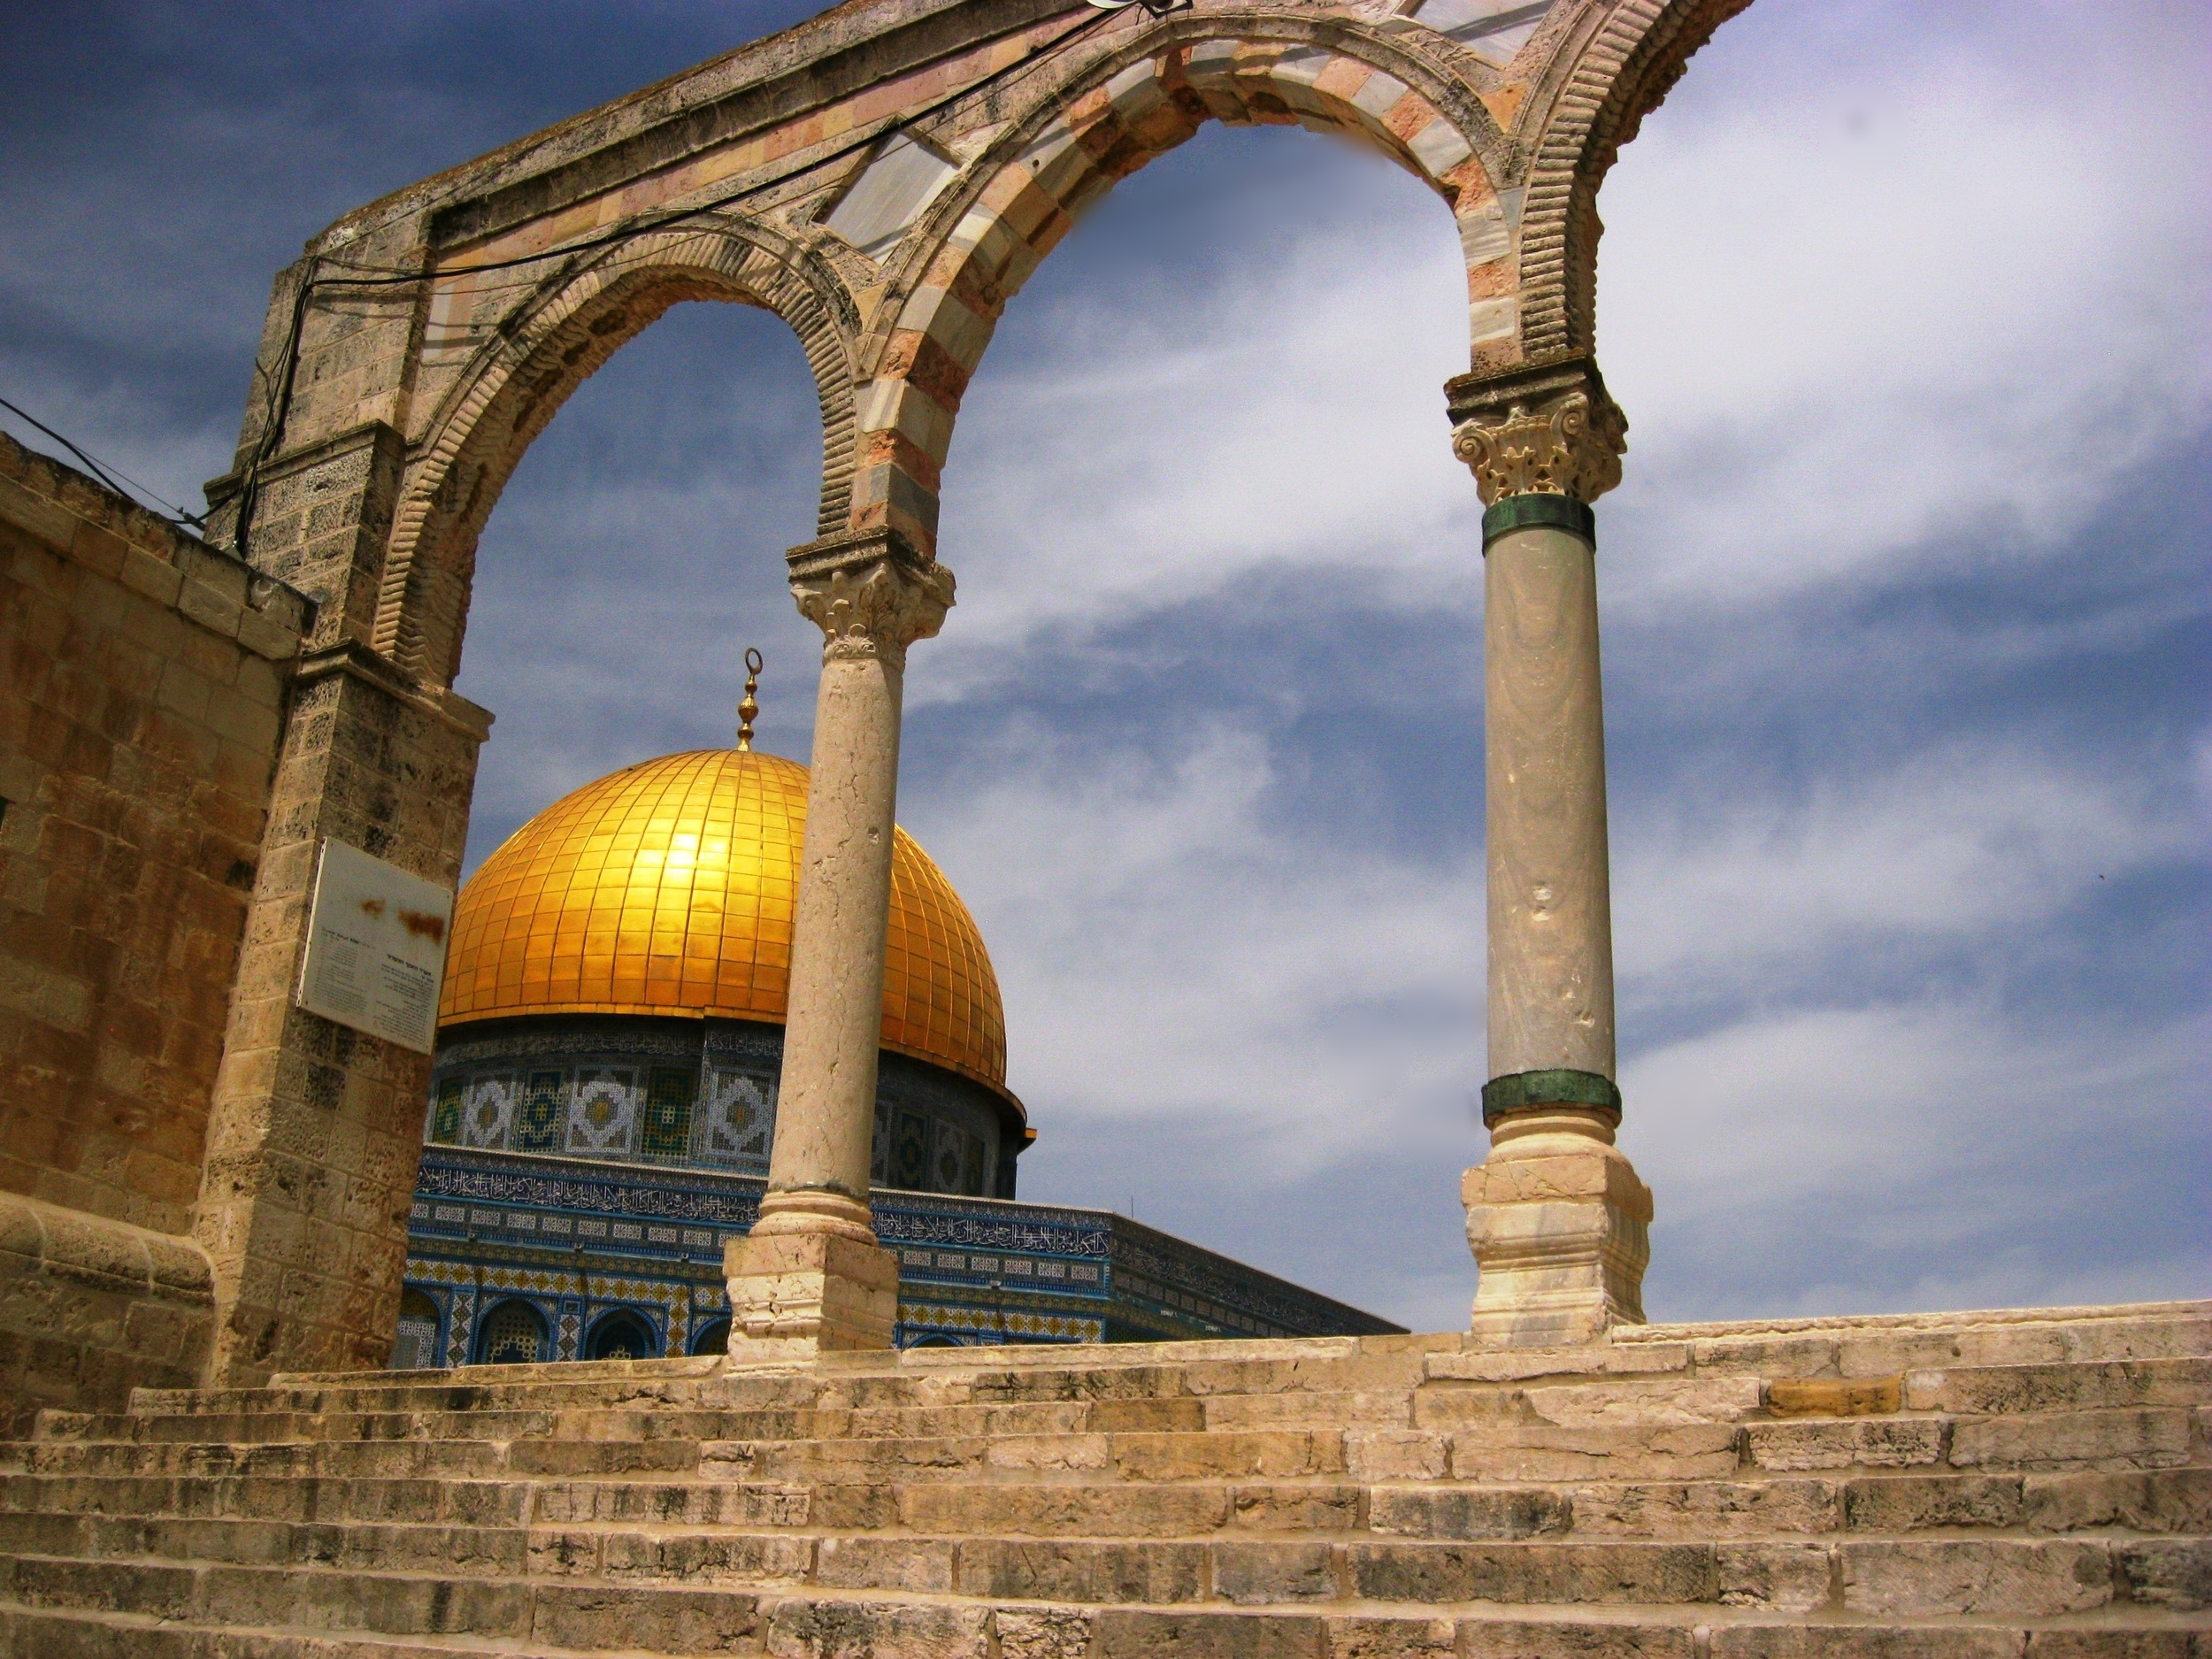 Approaching the al-Aqsa Mosque